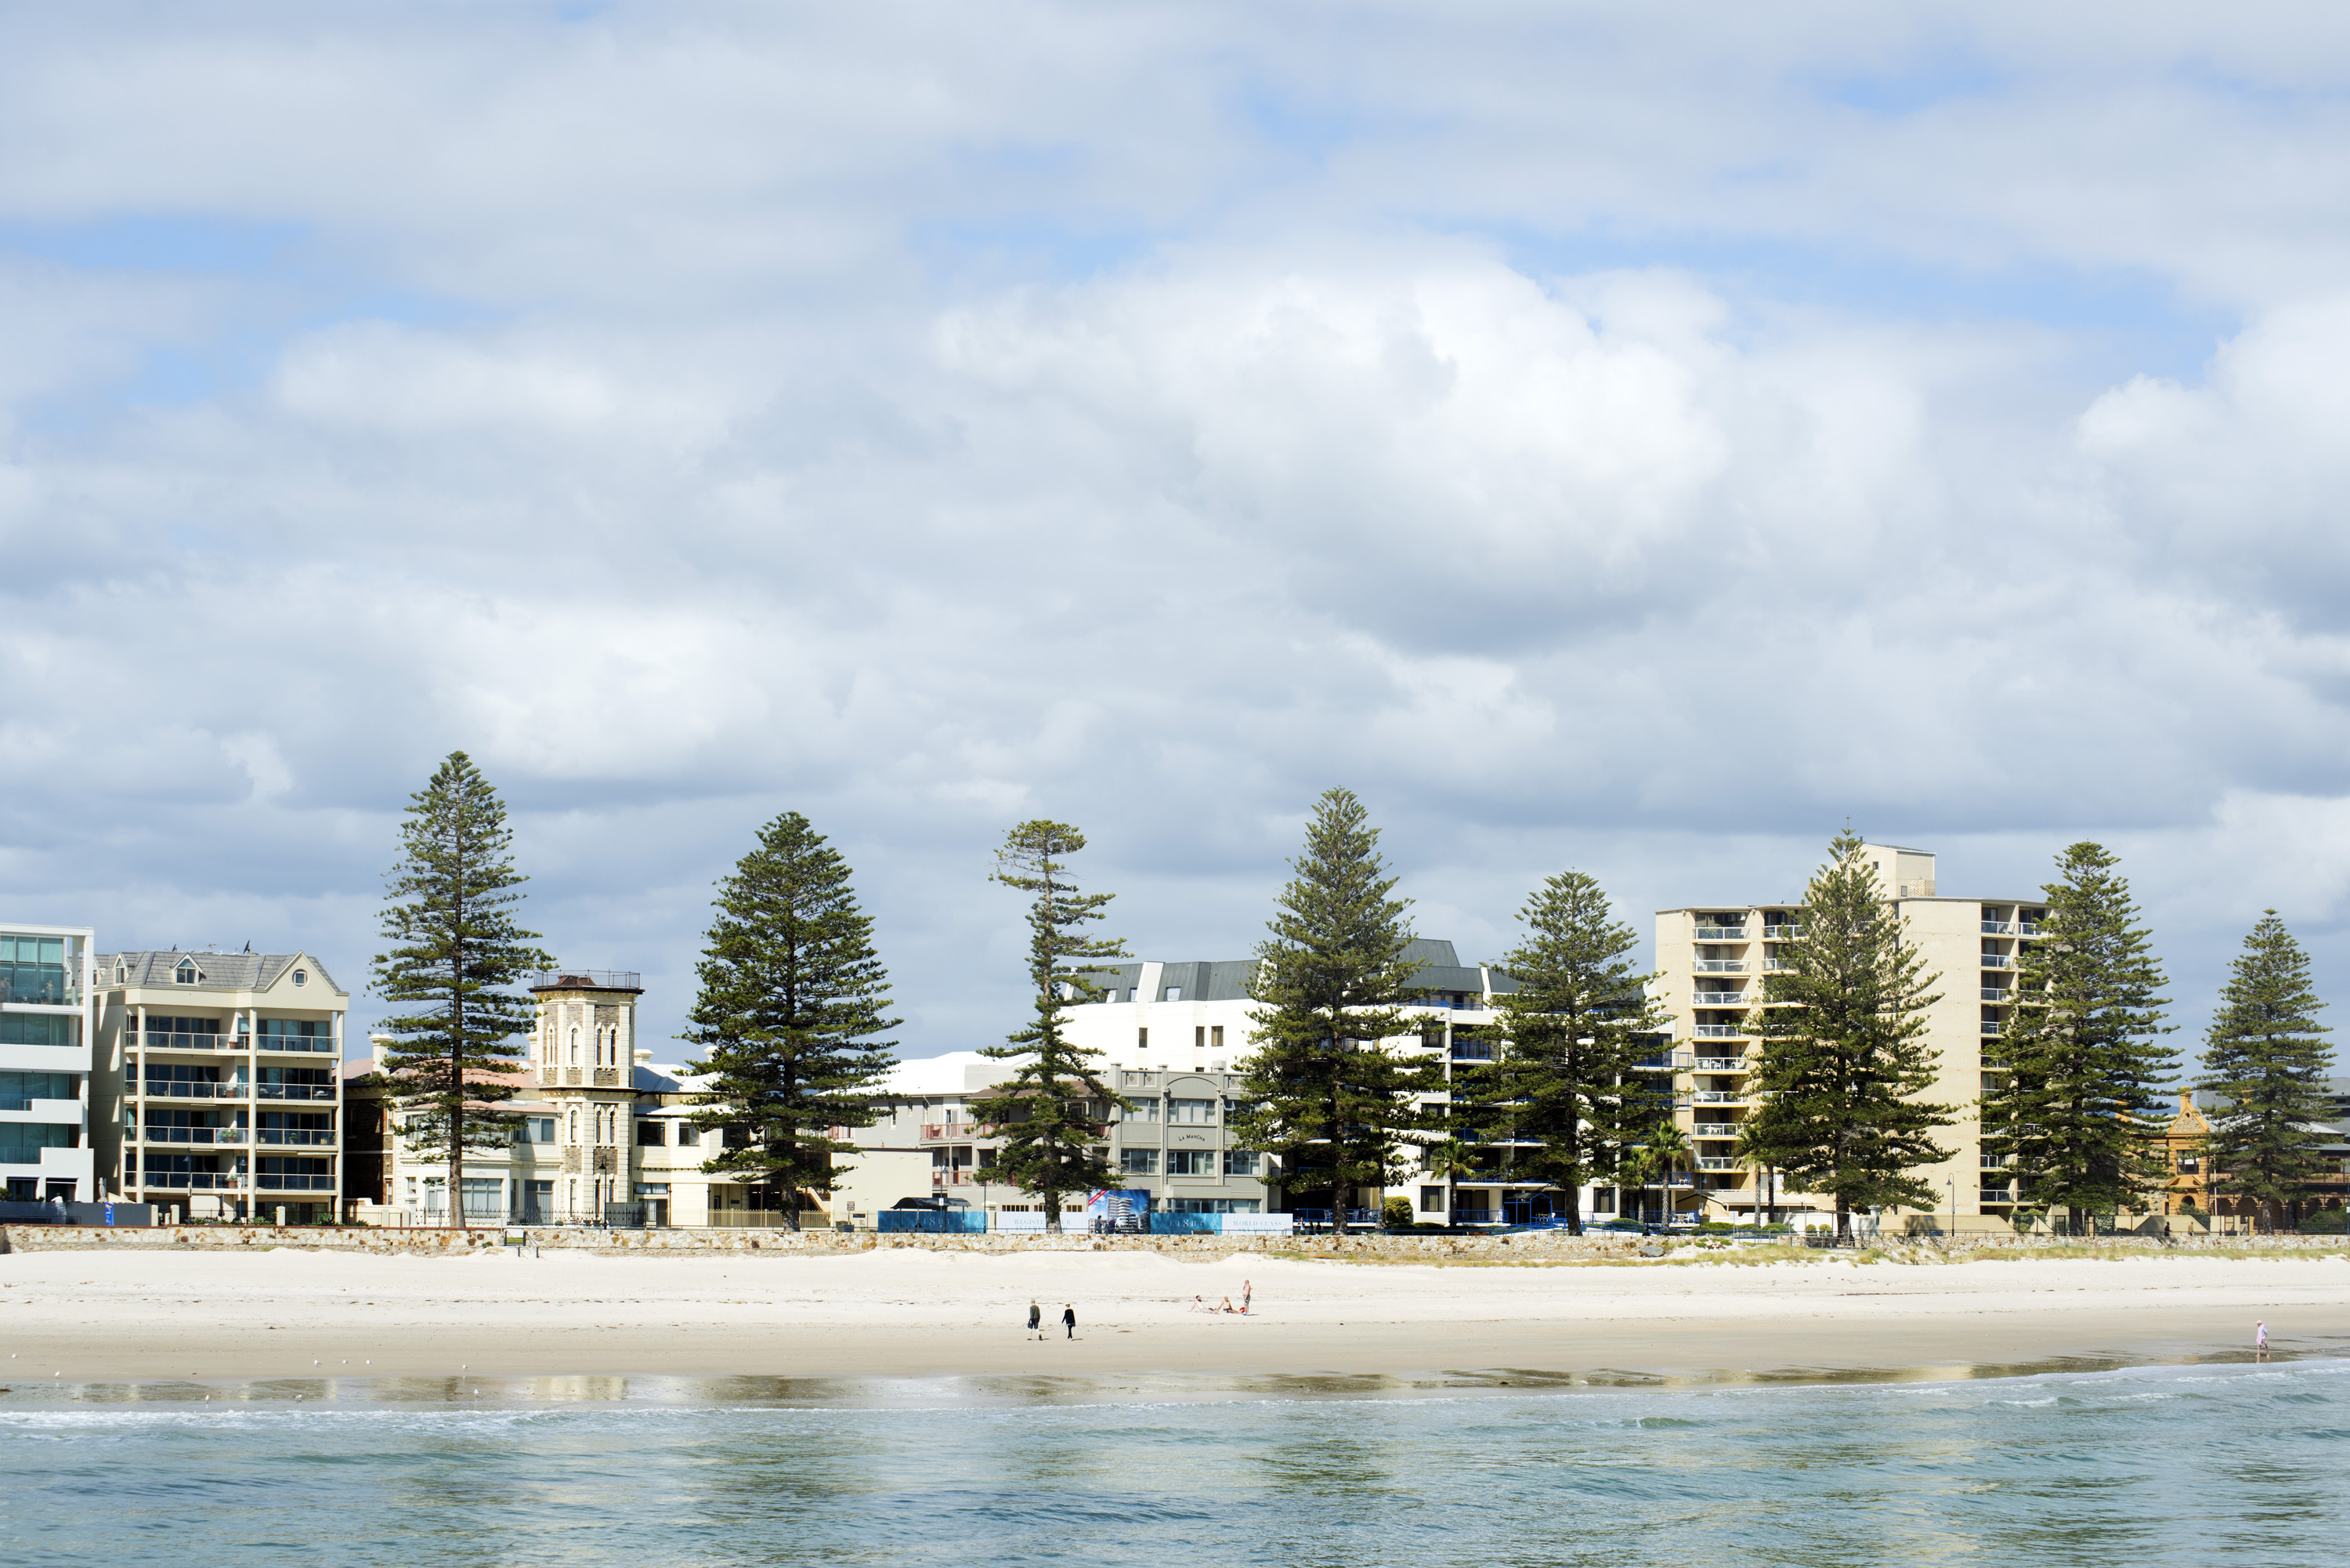 Waterfront apartments in Glenelg, Australia overlooking a sandy tropical beach with coniferous trees viewed across the sea on a cloudy day